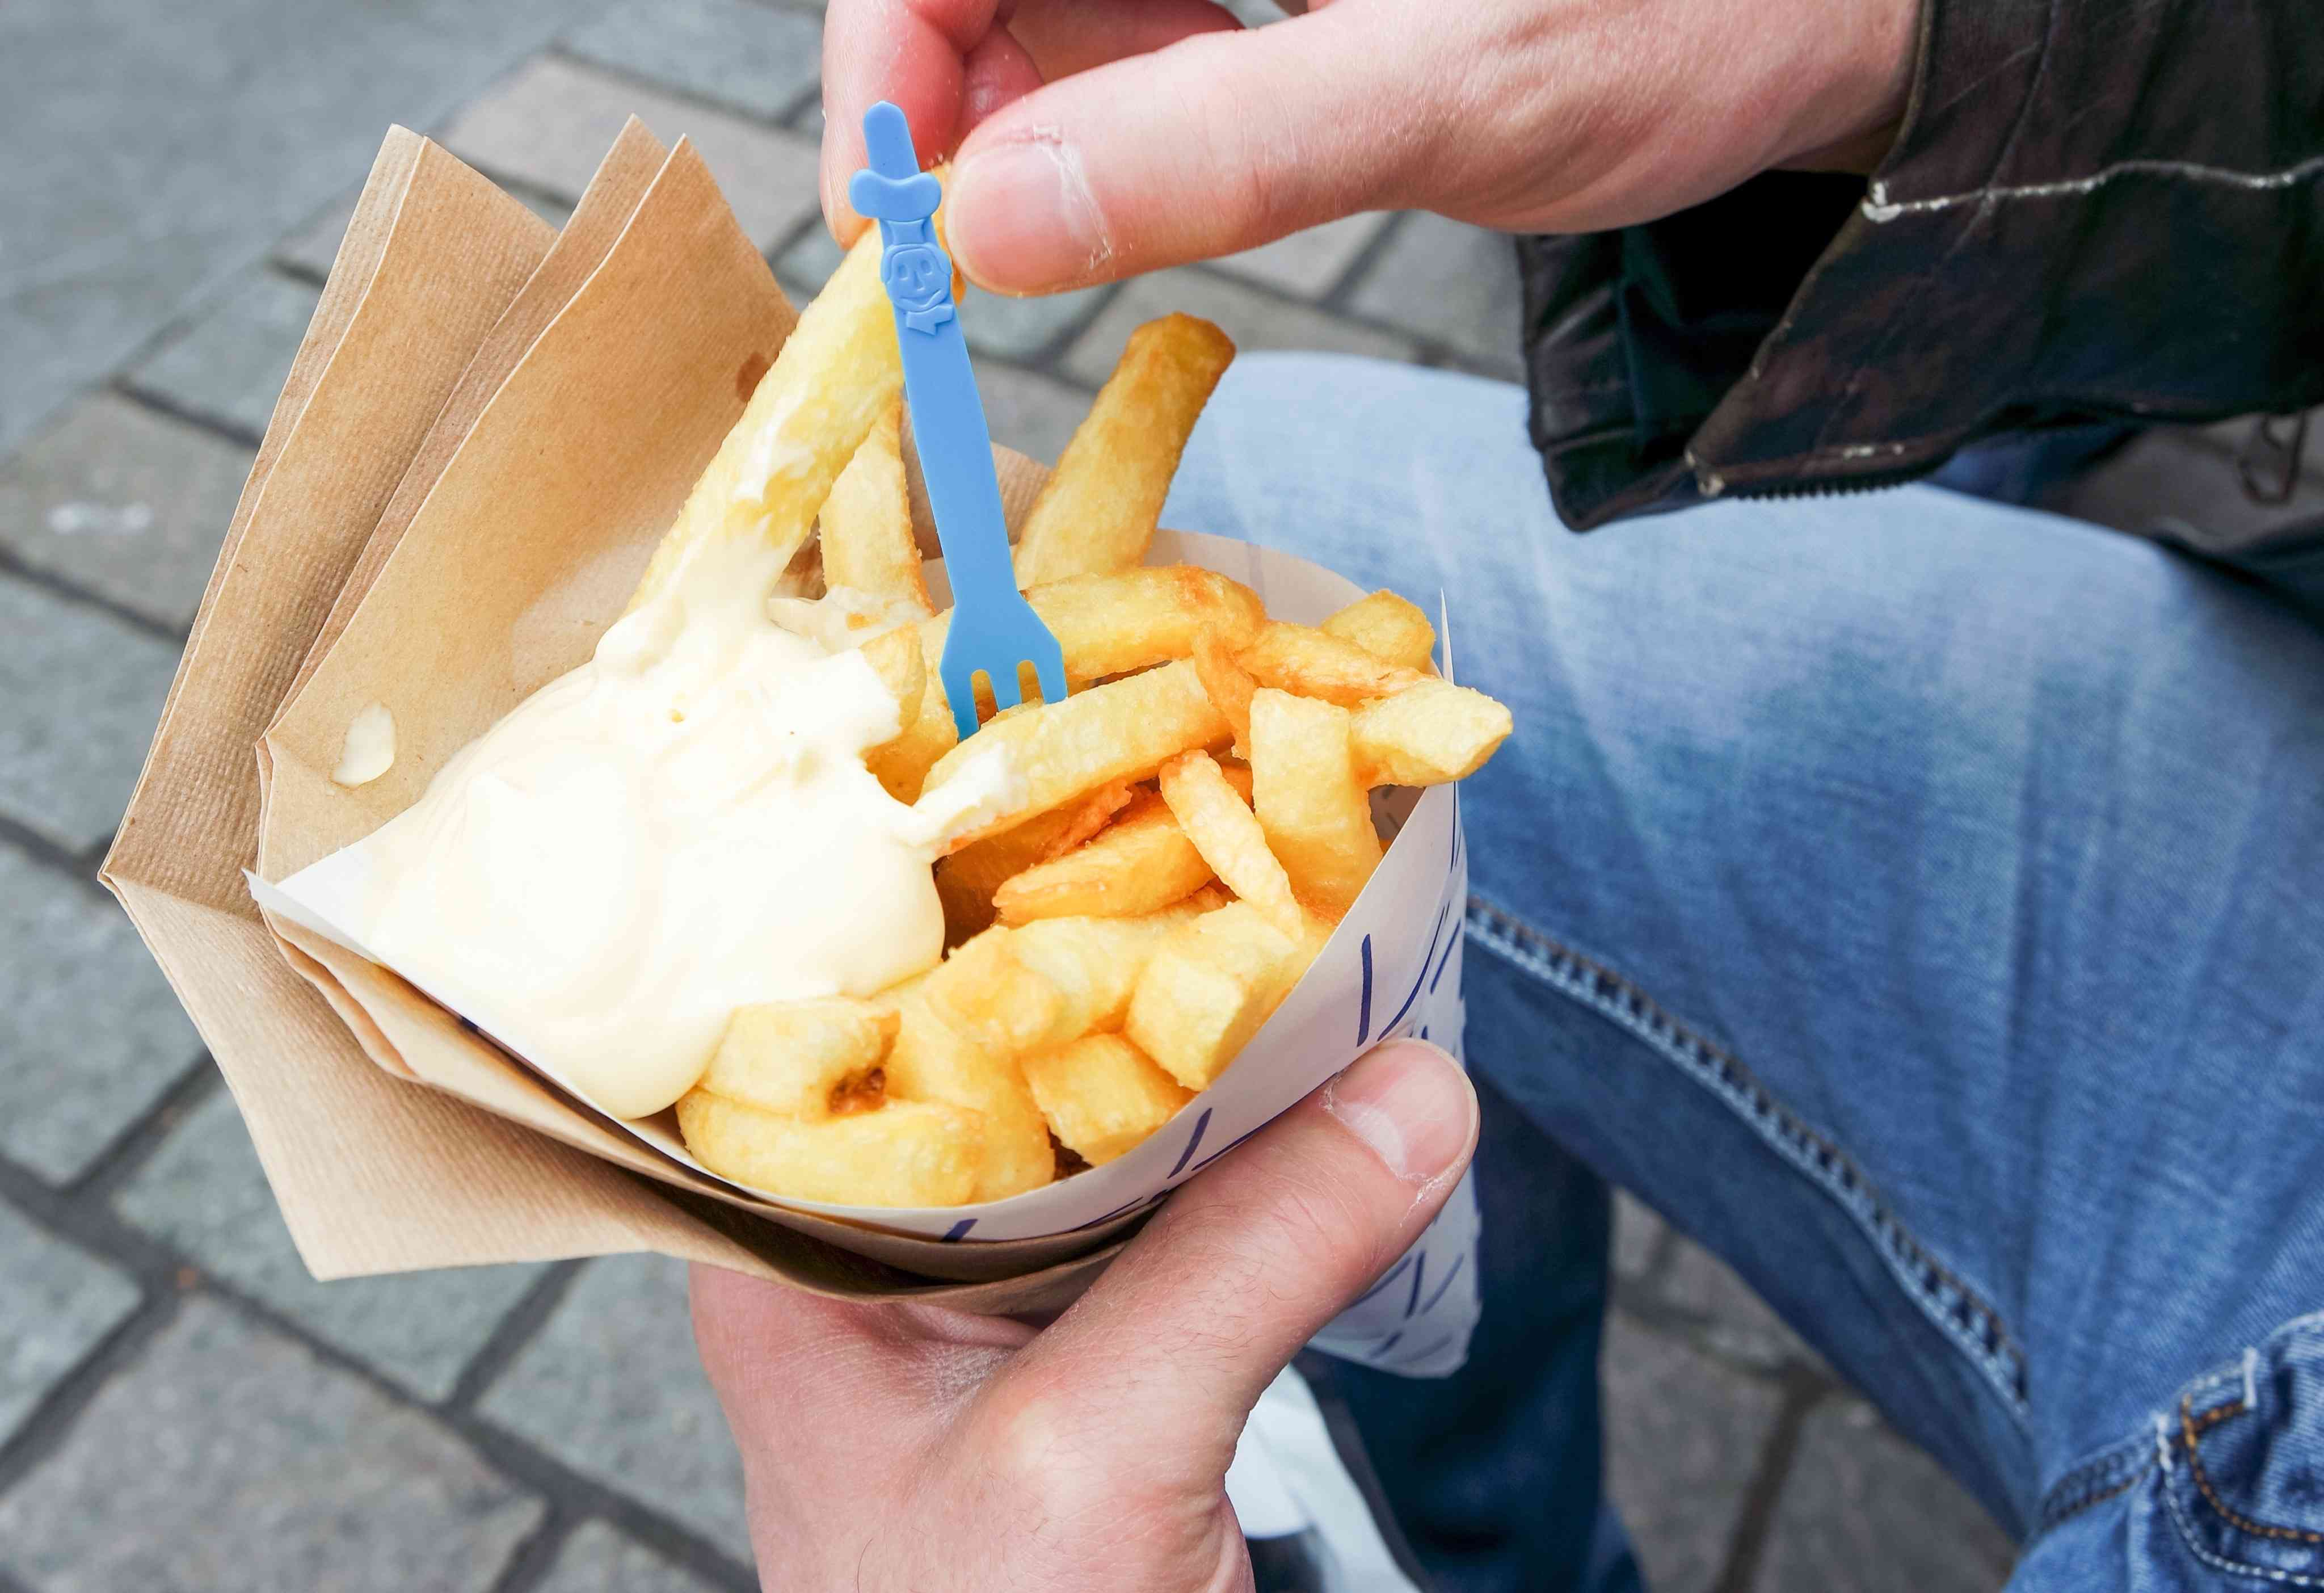 Person Holding French Fries Over Walkway